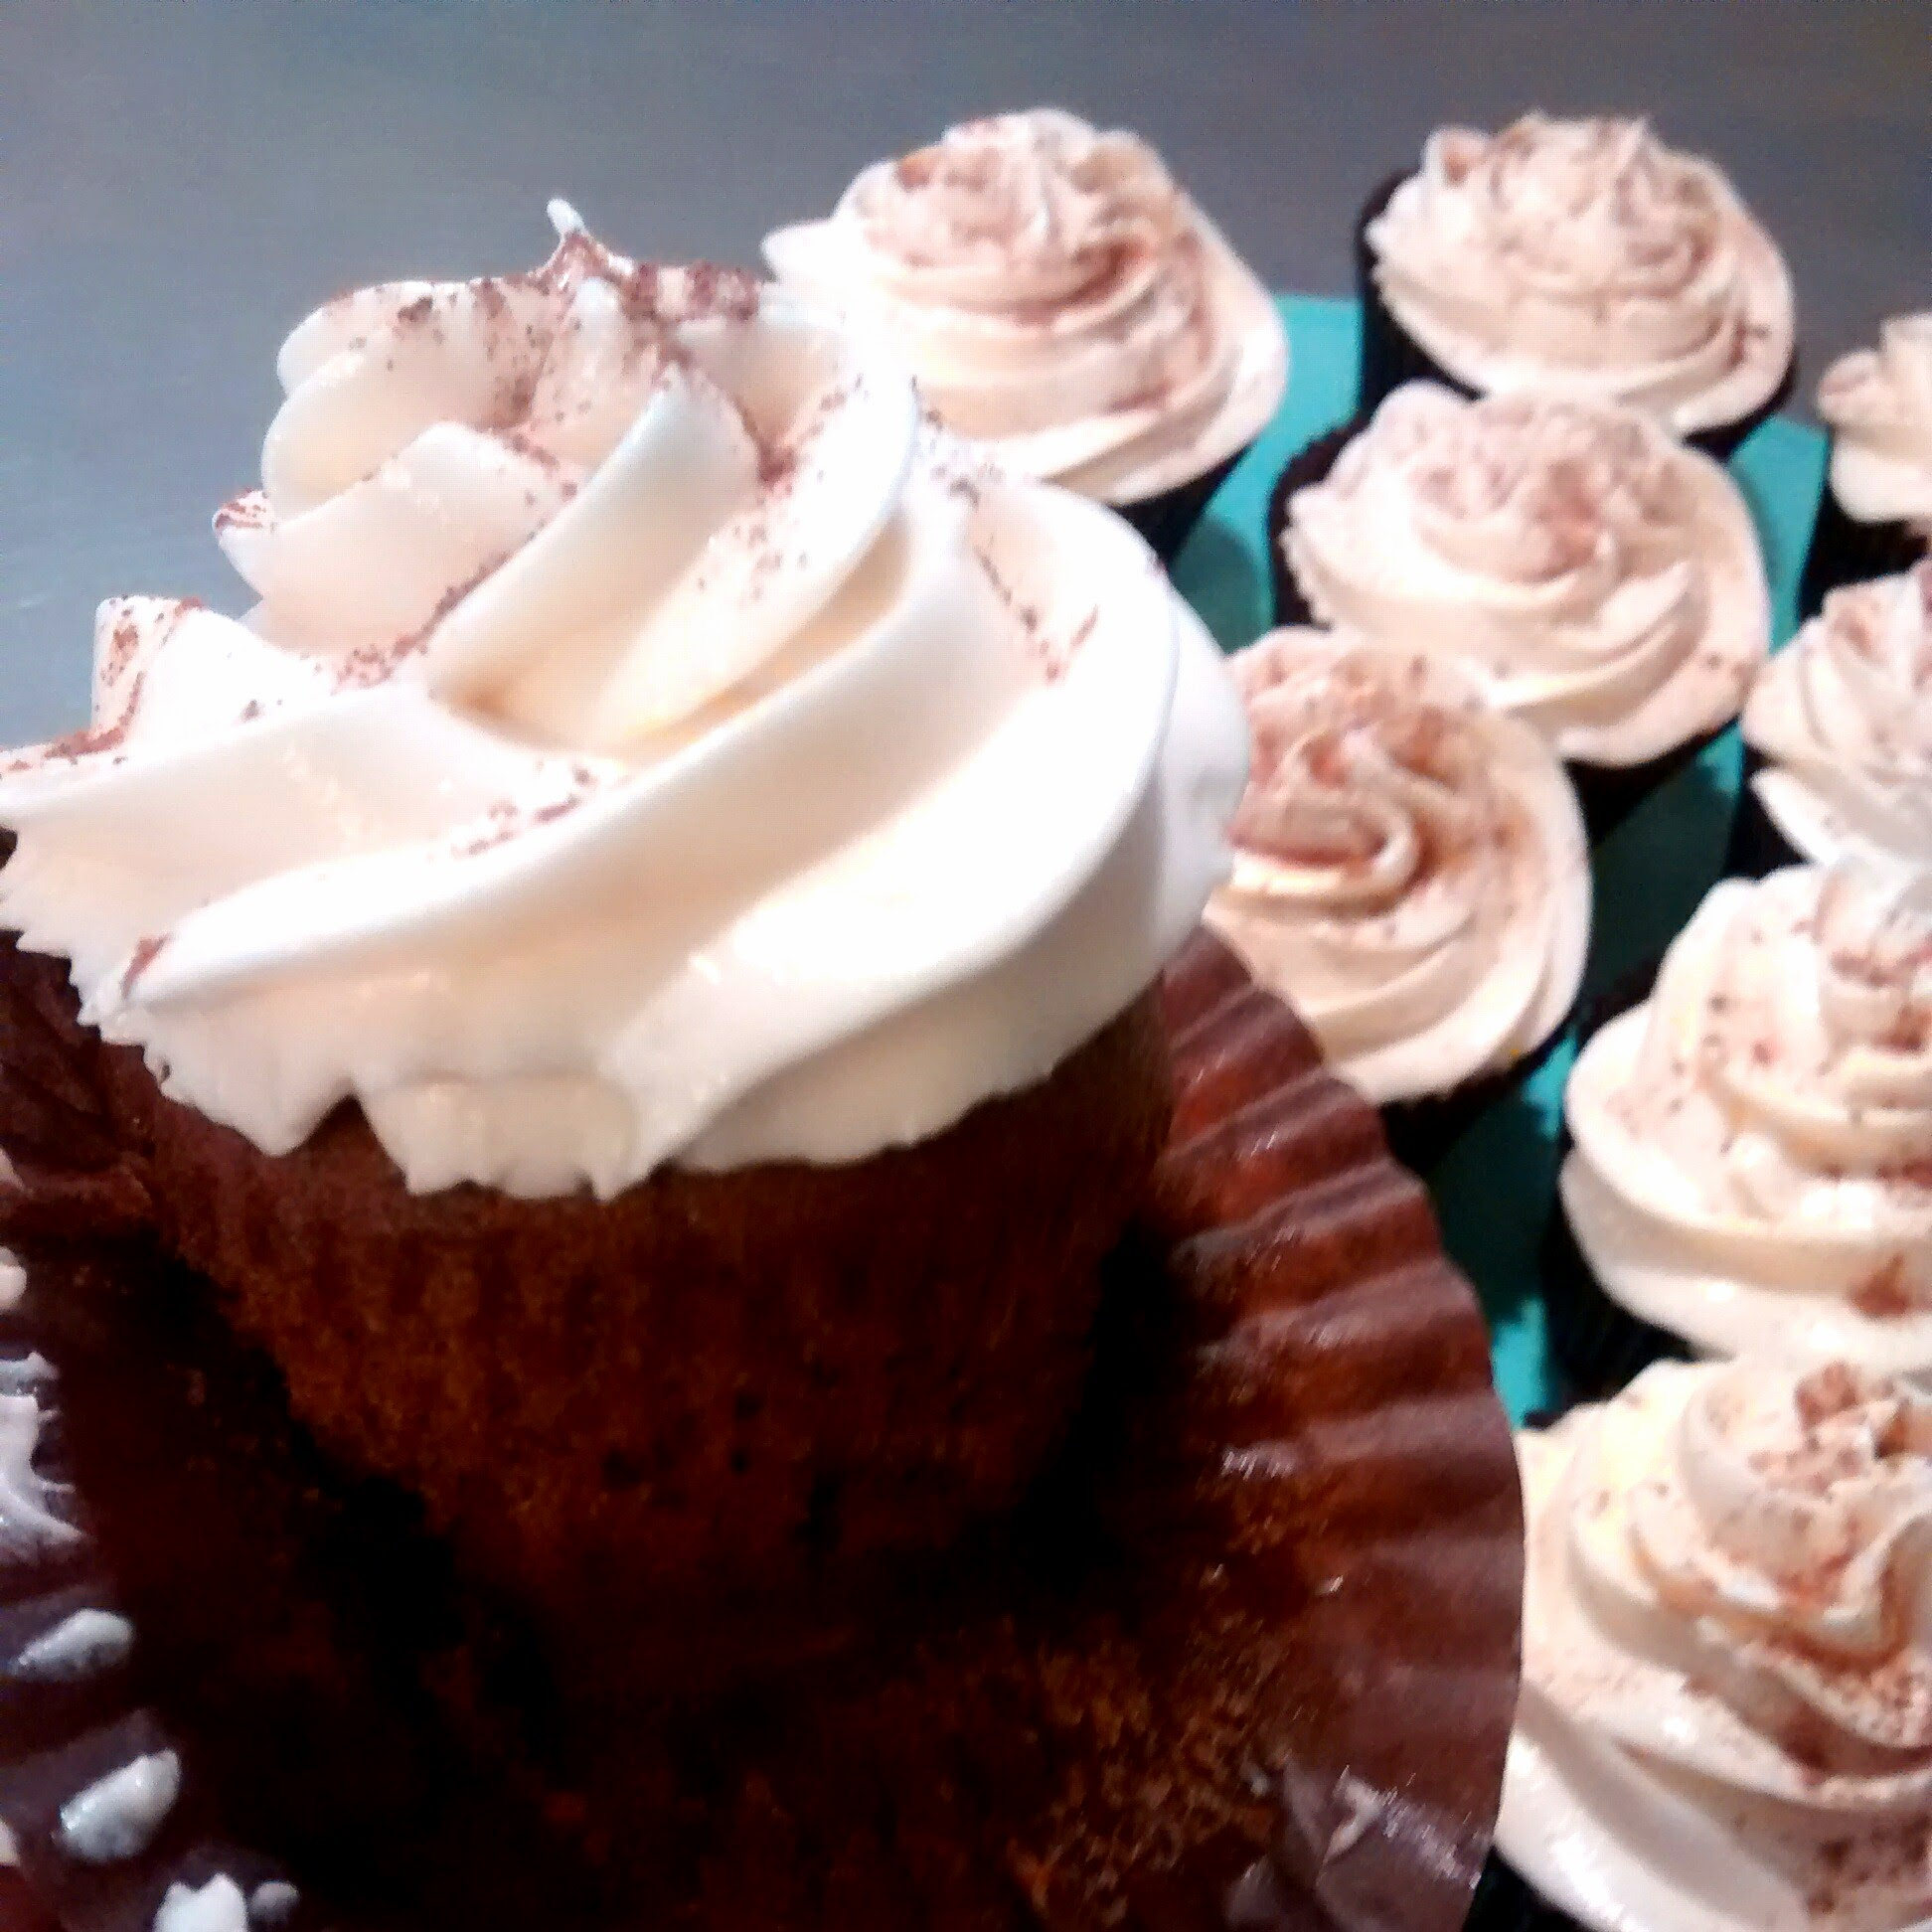 Chocolate with vanilla frosting and a dusting of cocoa powder